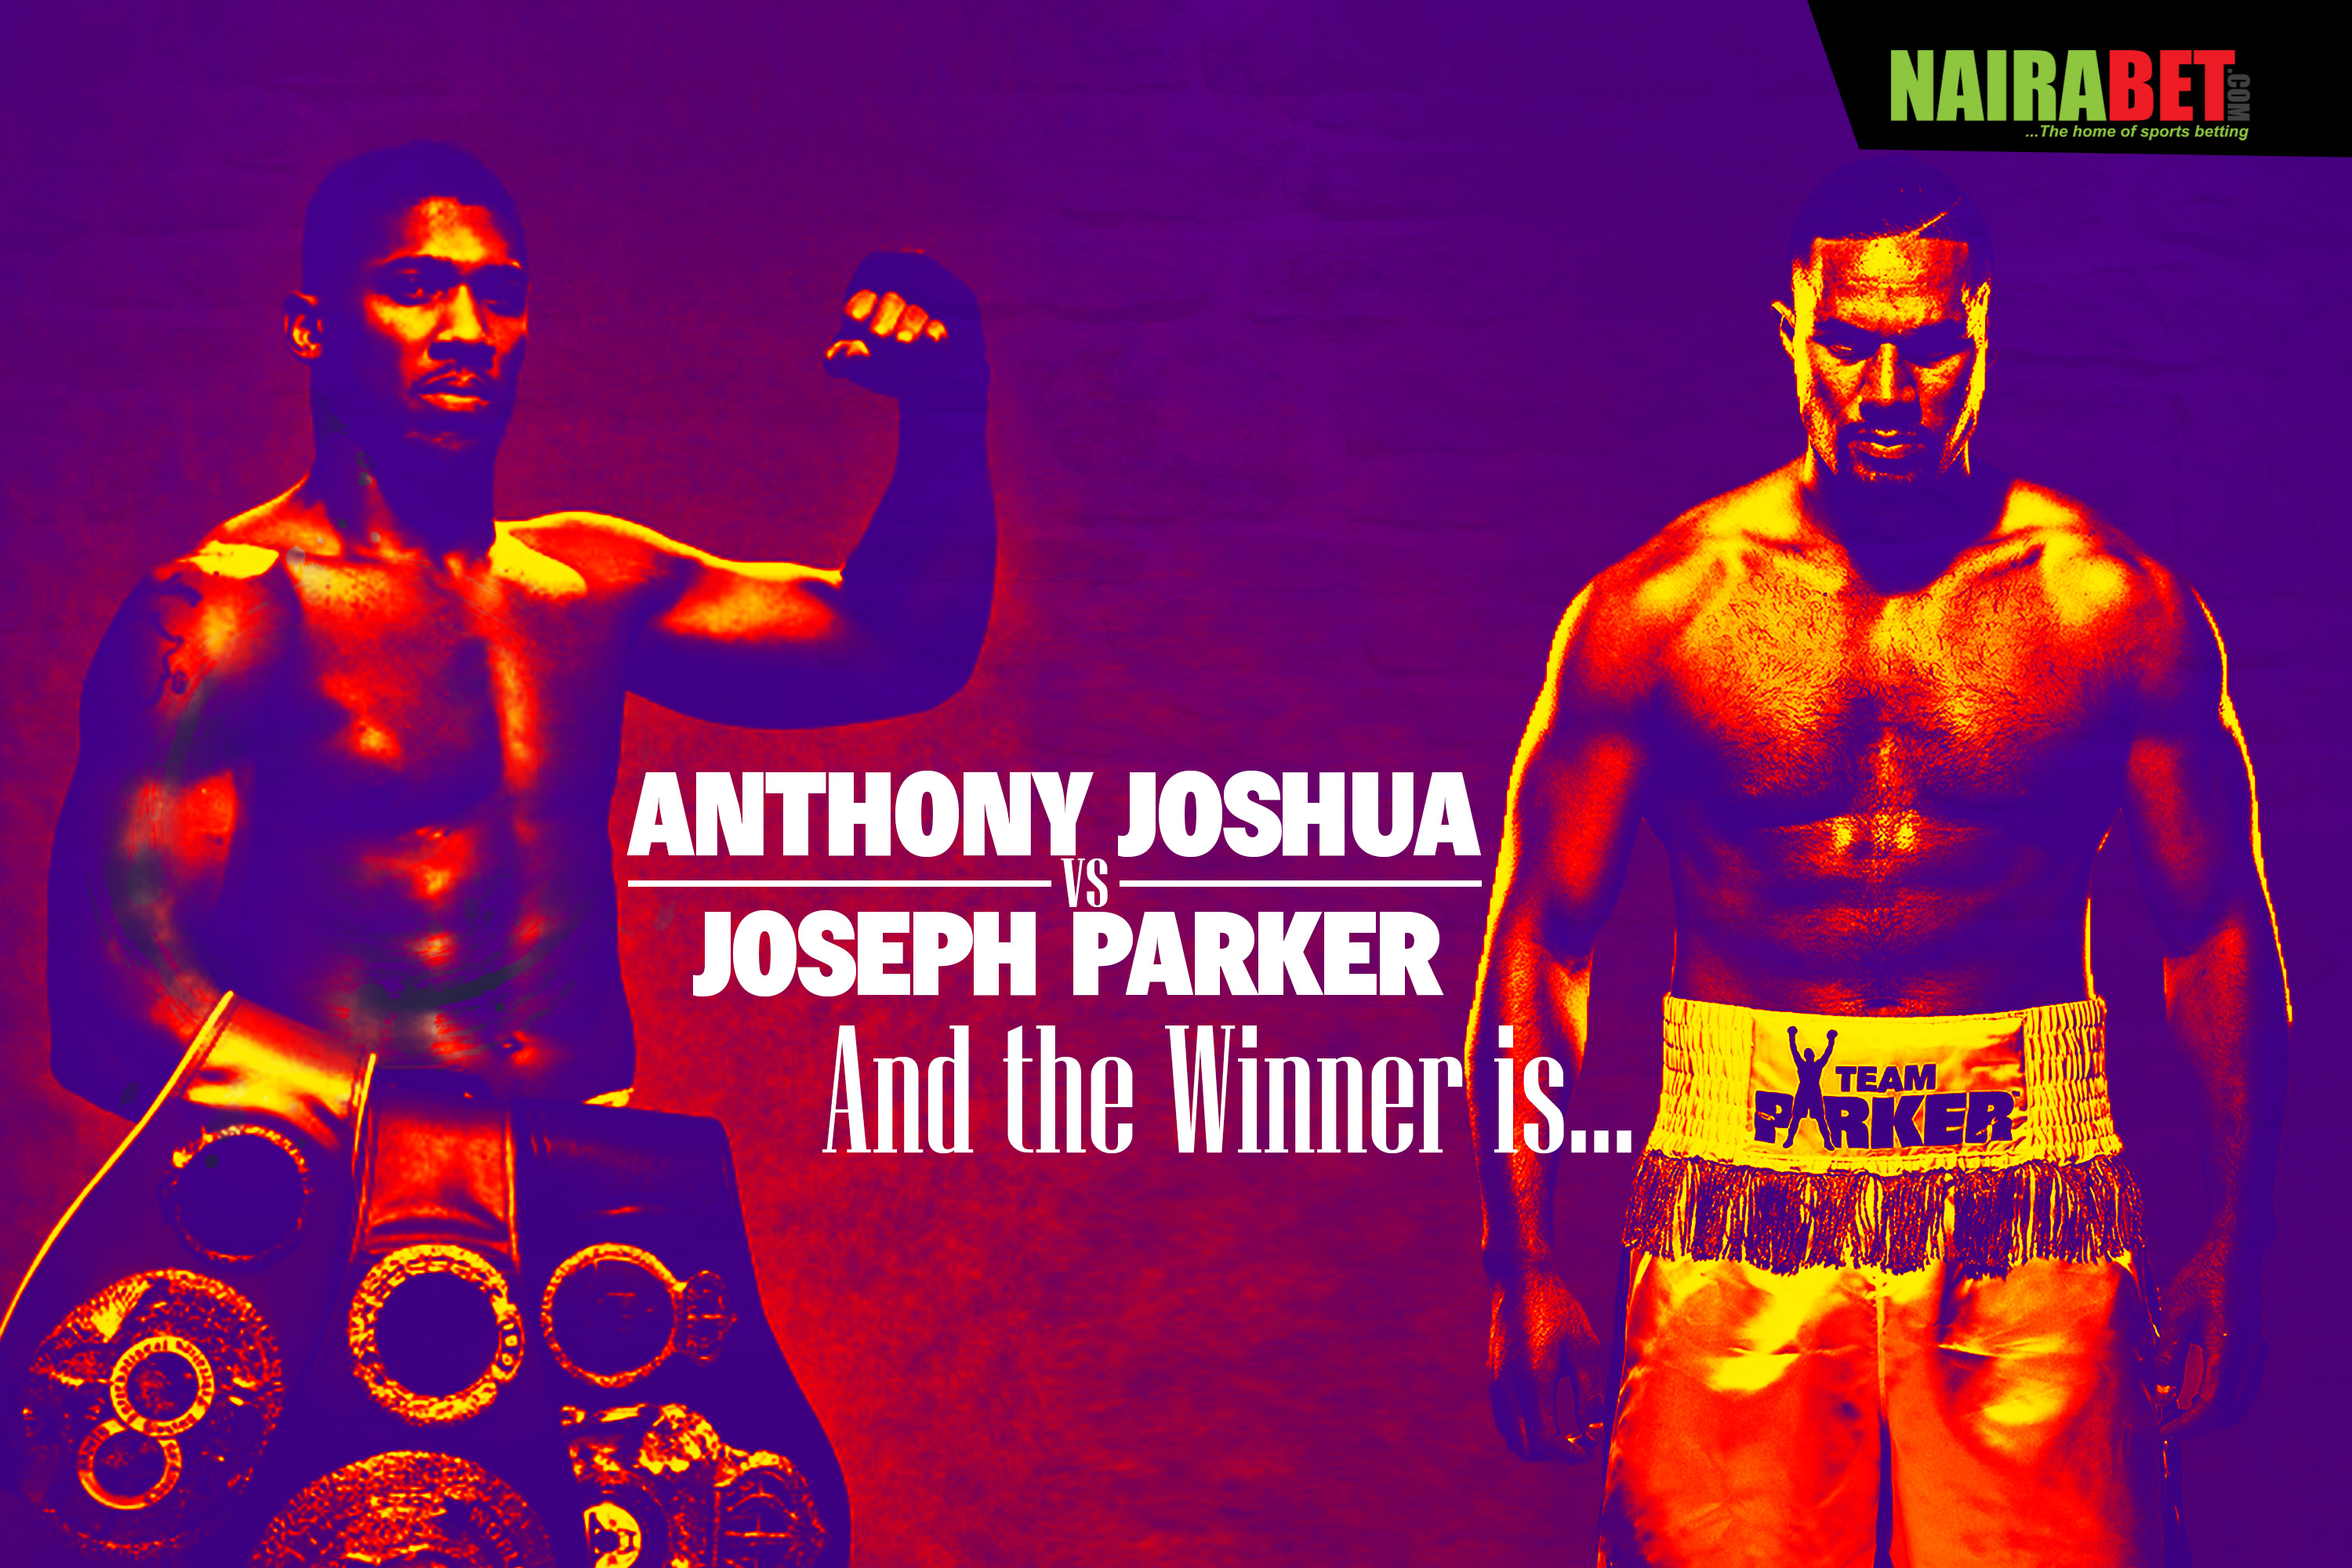 Anthony Joshua vs Joseph Parker